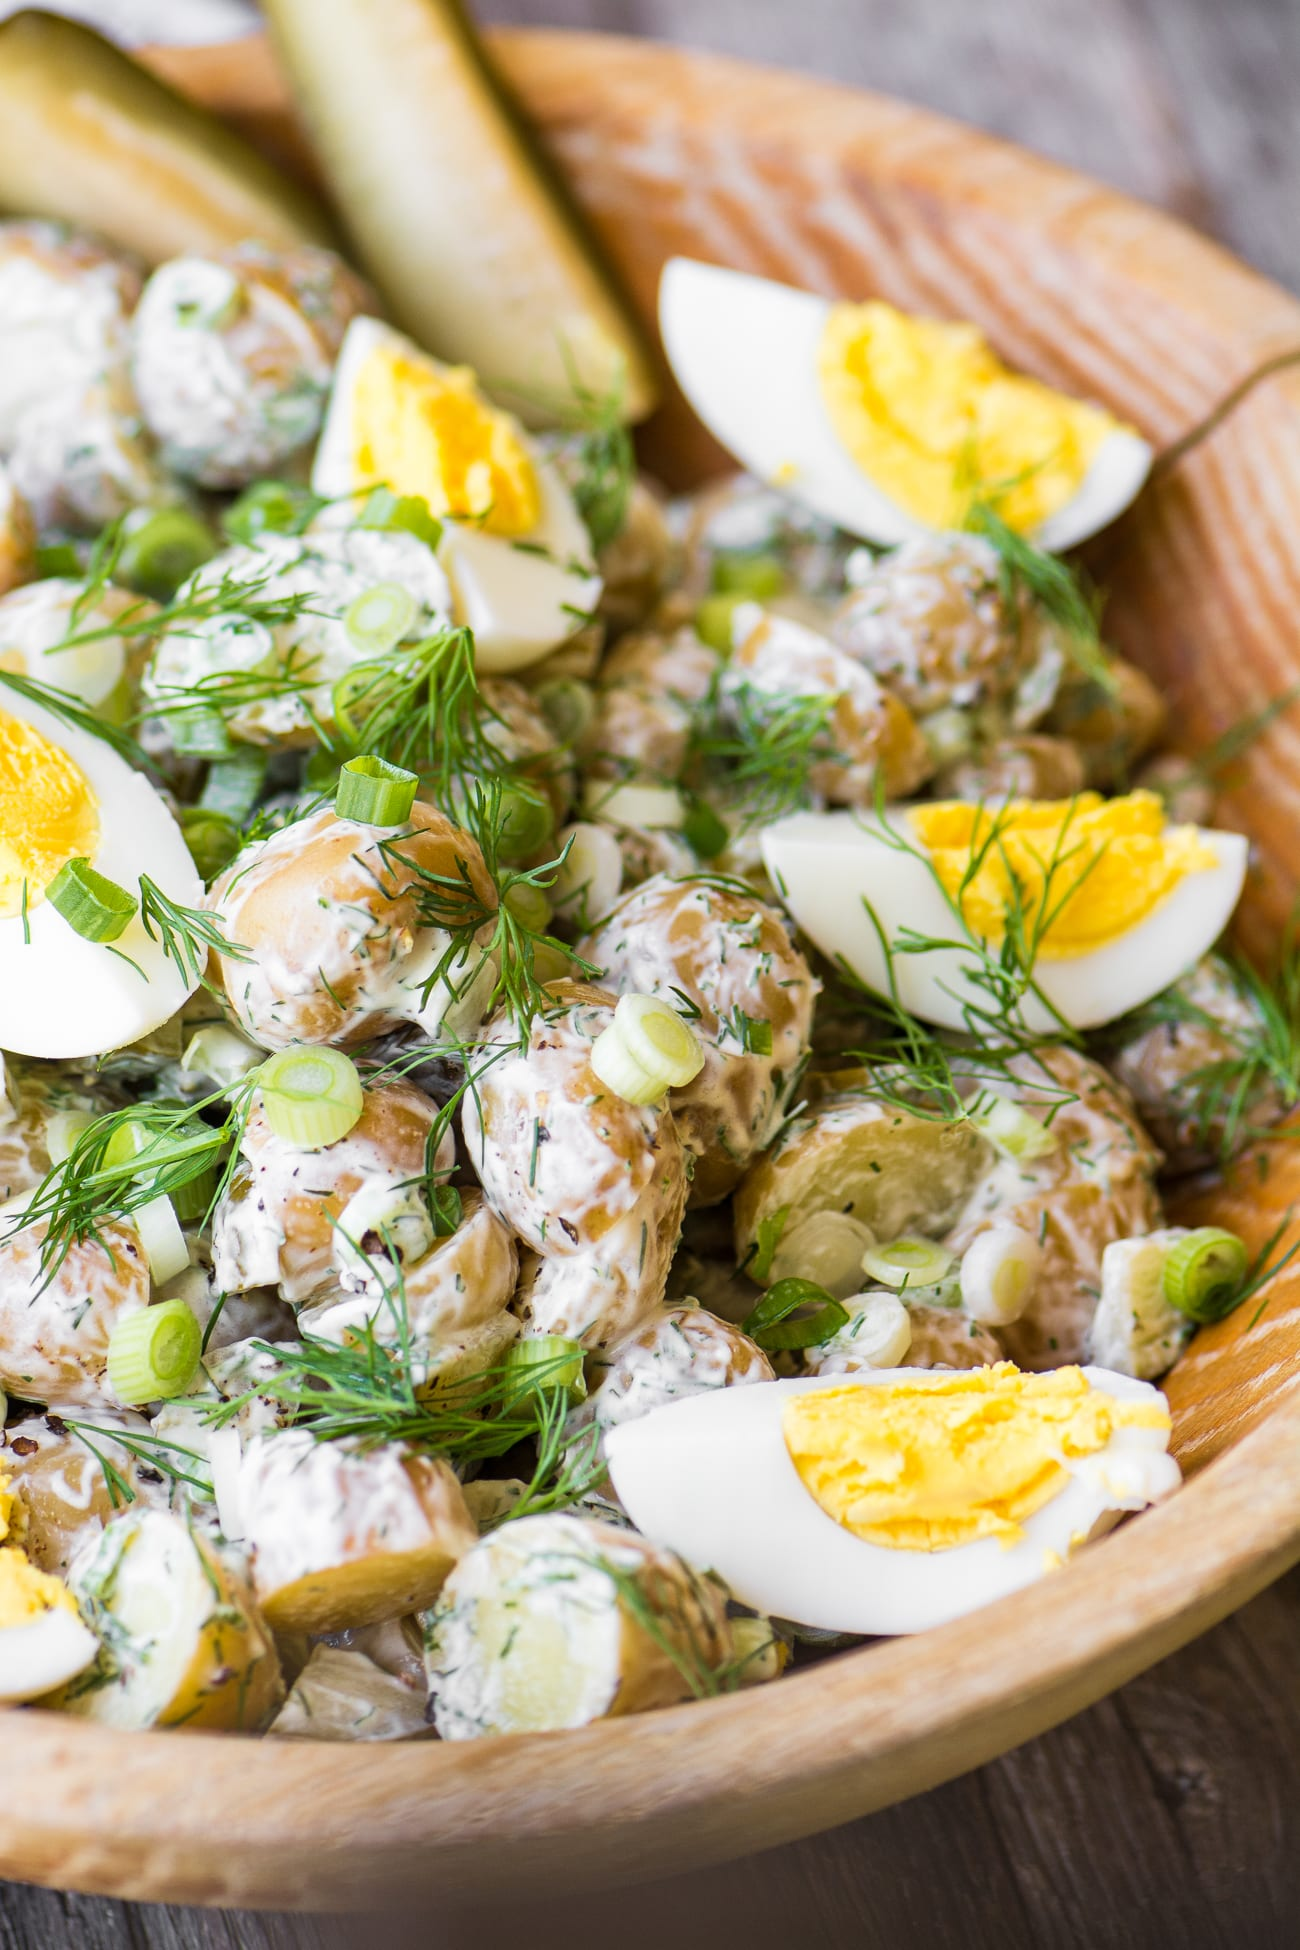 Dill Pickle Potato Salad is tripled infused with dill